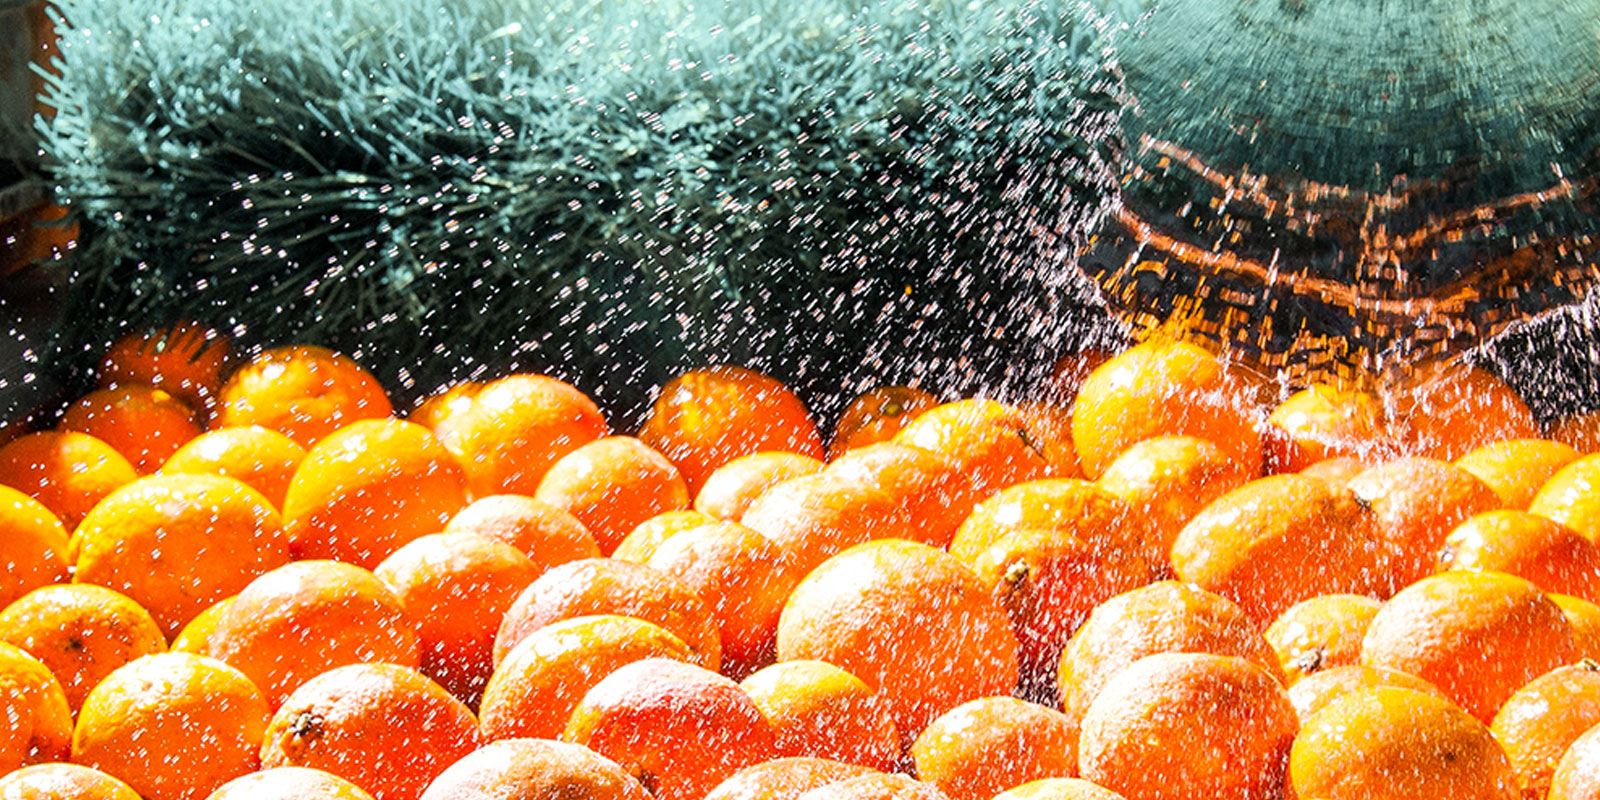 Oranges Getting Washed